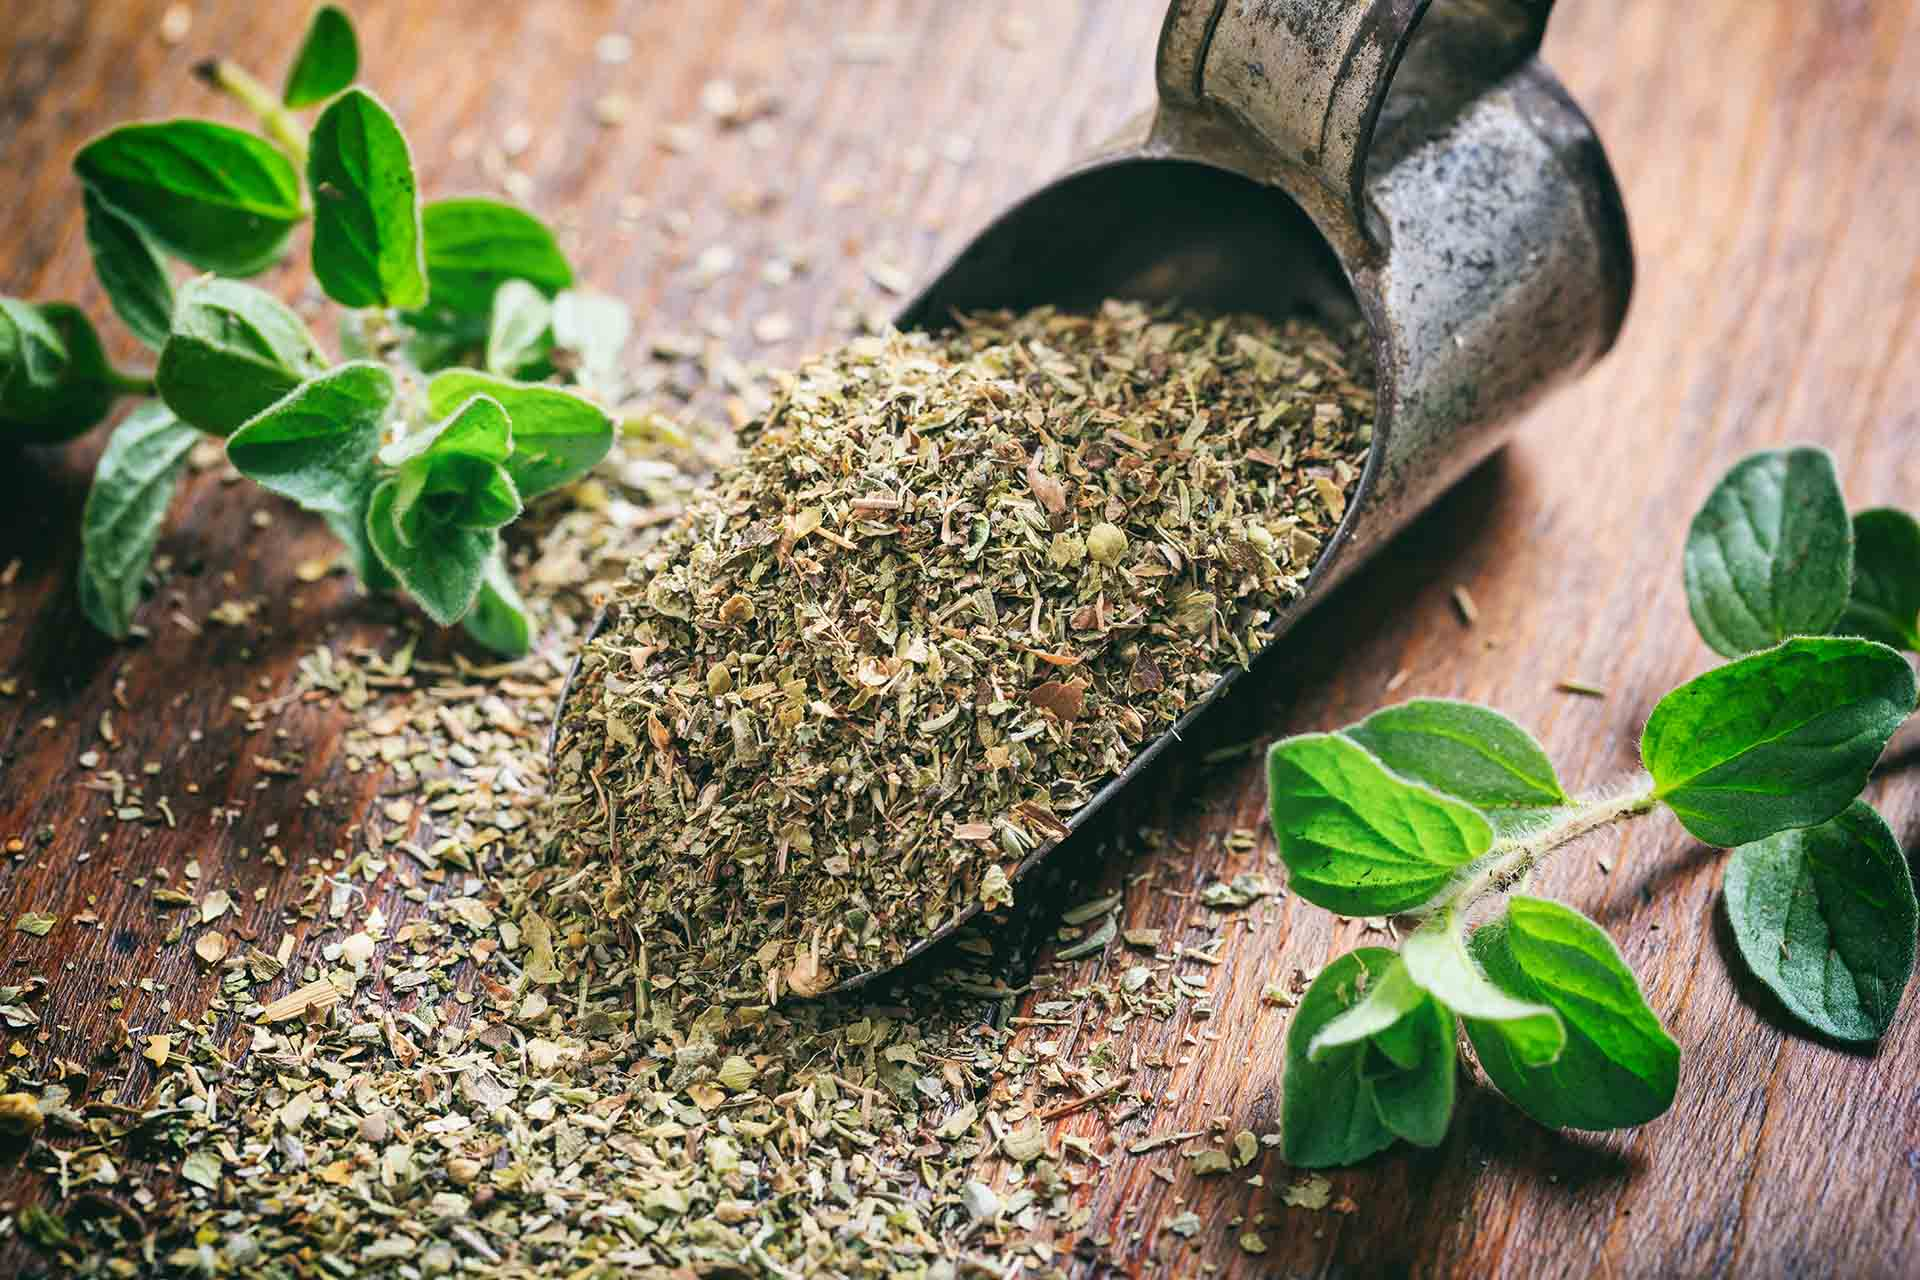 Falsified oregano has higher contaminant levels